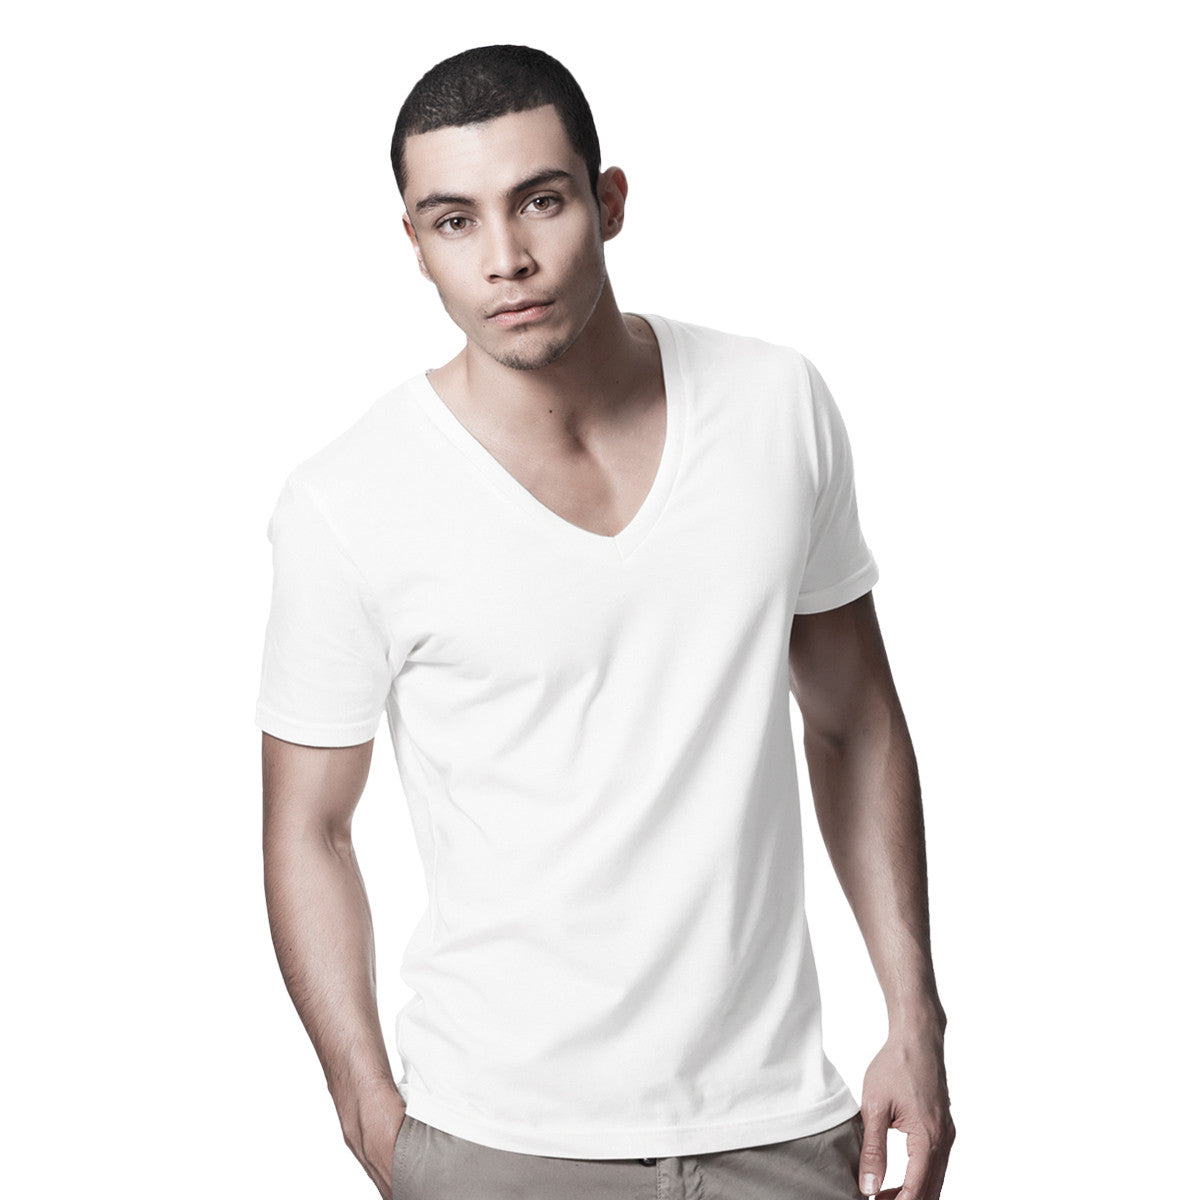 7e9d14dcd99 DANYEYI® Mens Organic Deep V-Neck White   Black Slim Fit Plain T-Shirt Tee  - S-XL